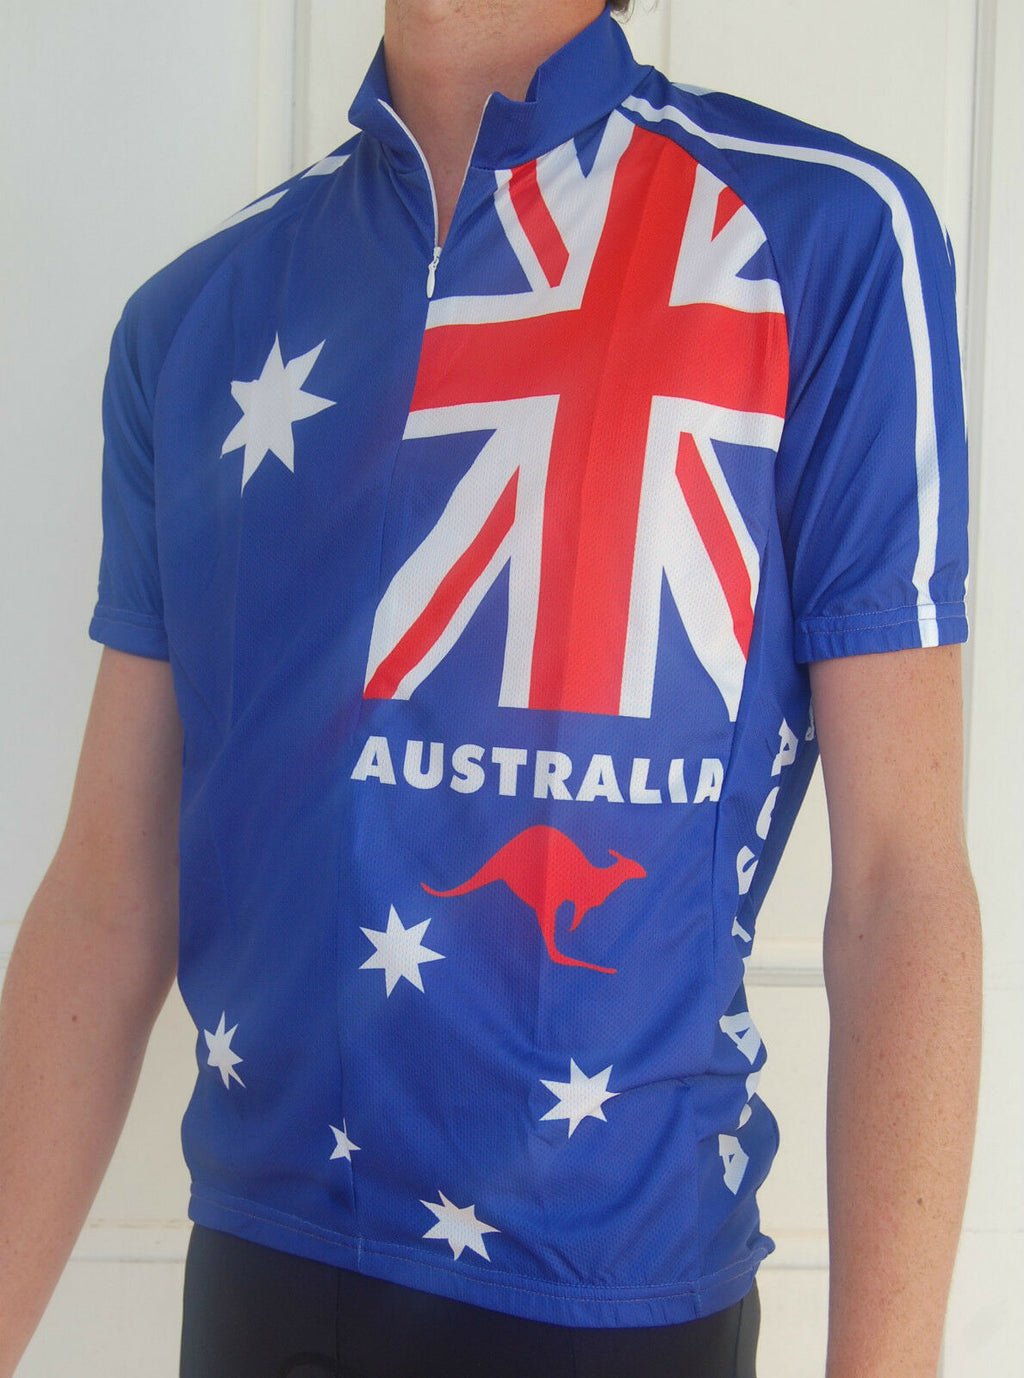 Unisex Australia flag jersey (Blue, Red & White)